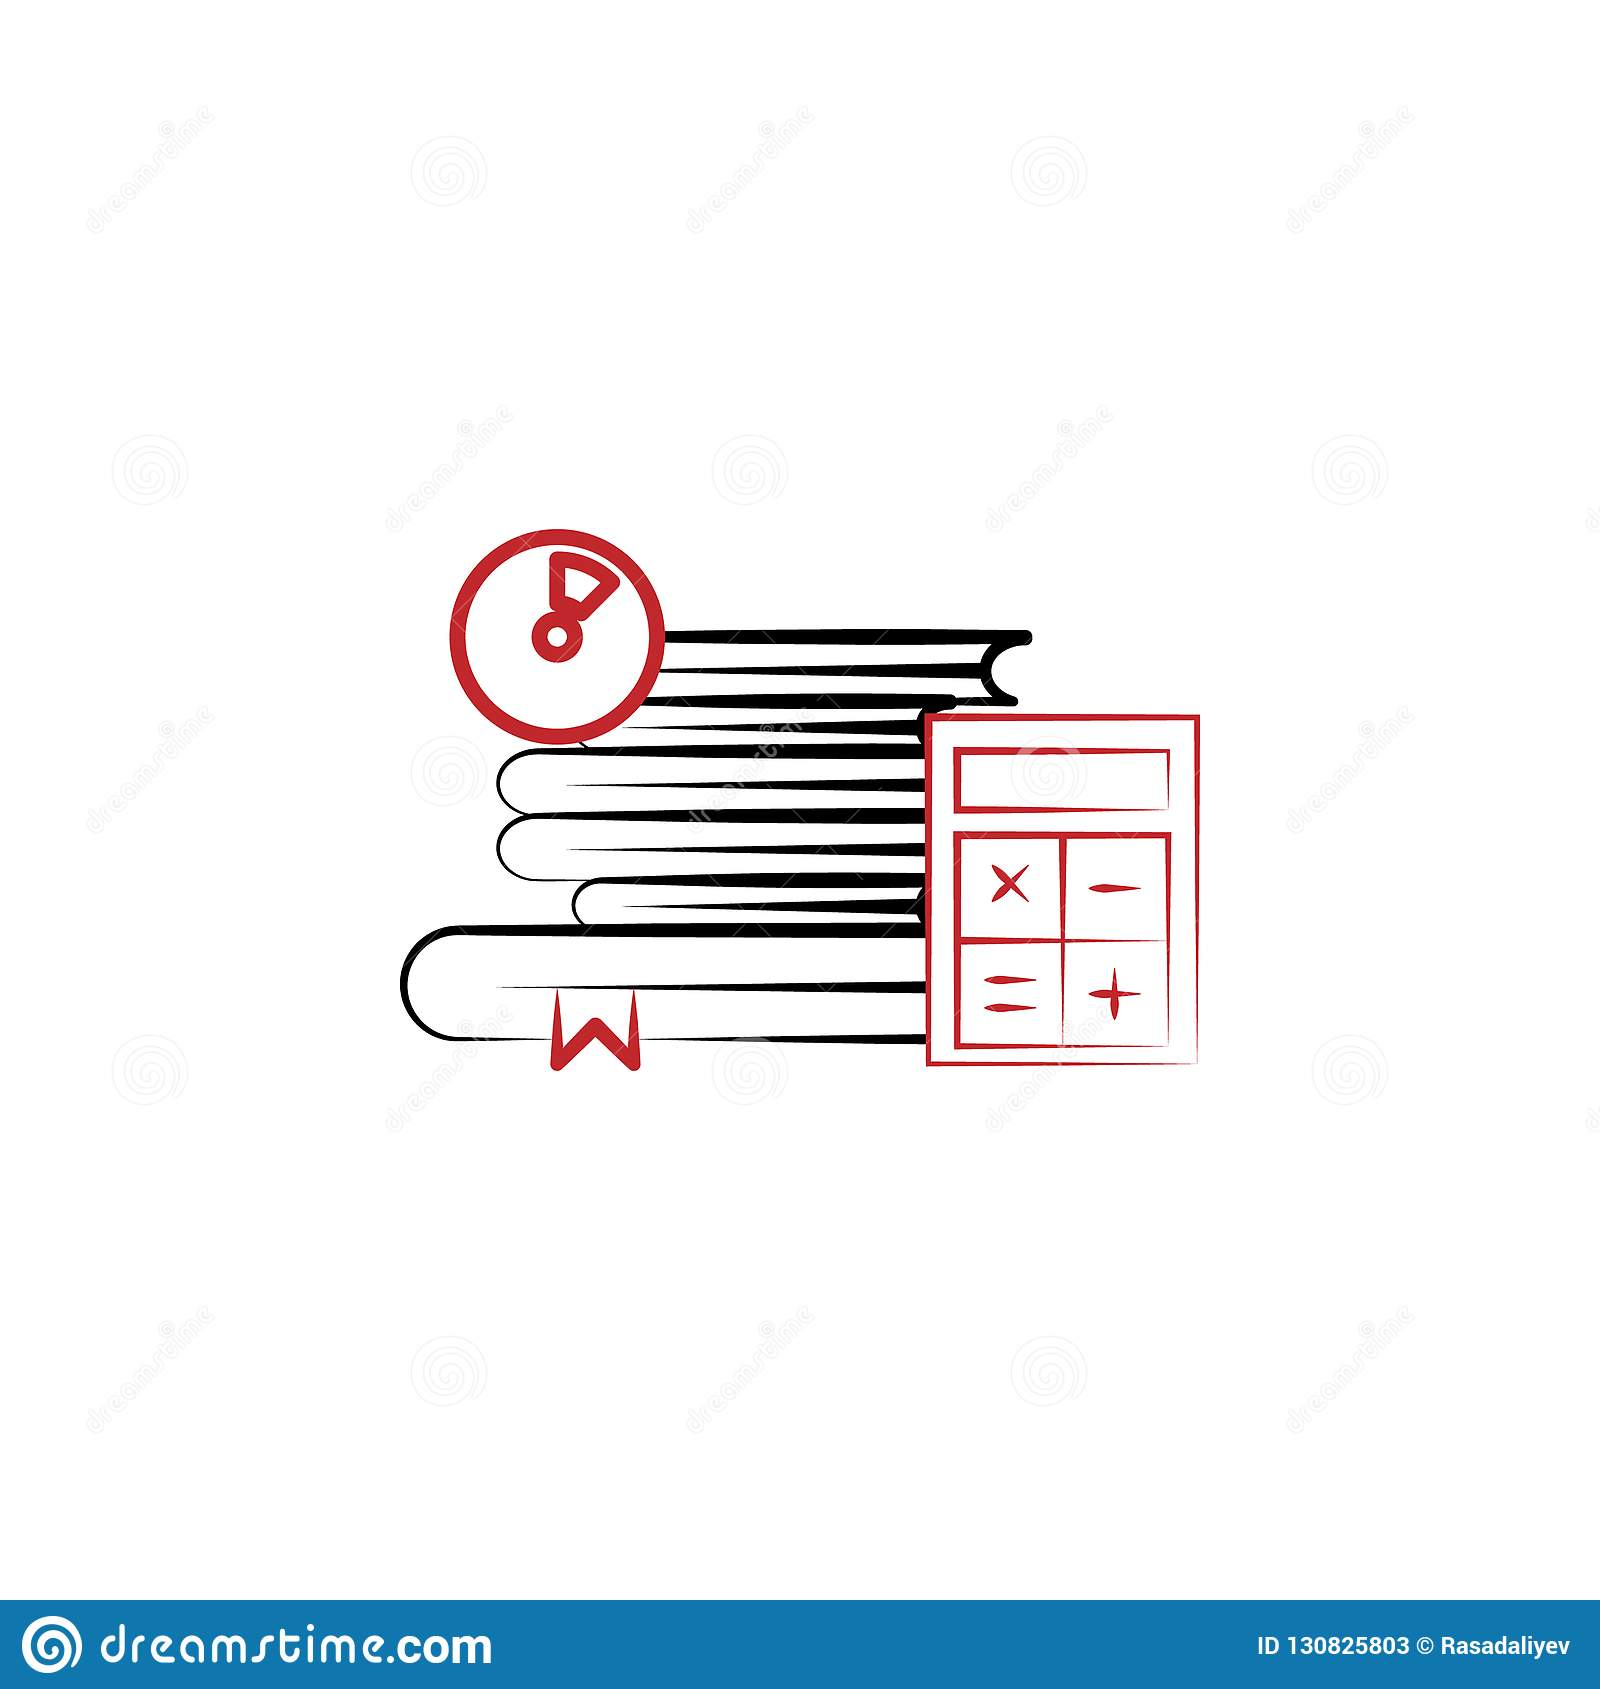 bbe63dd85187 professional training 2 colored line icon. Simple colored element  illustration. professional training outline symbol